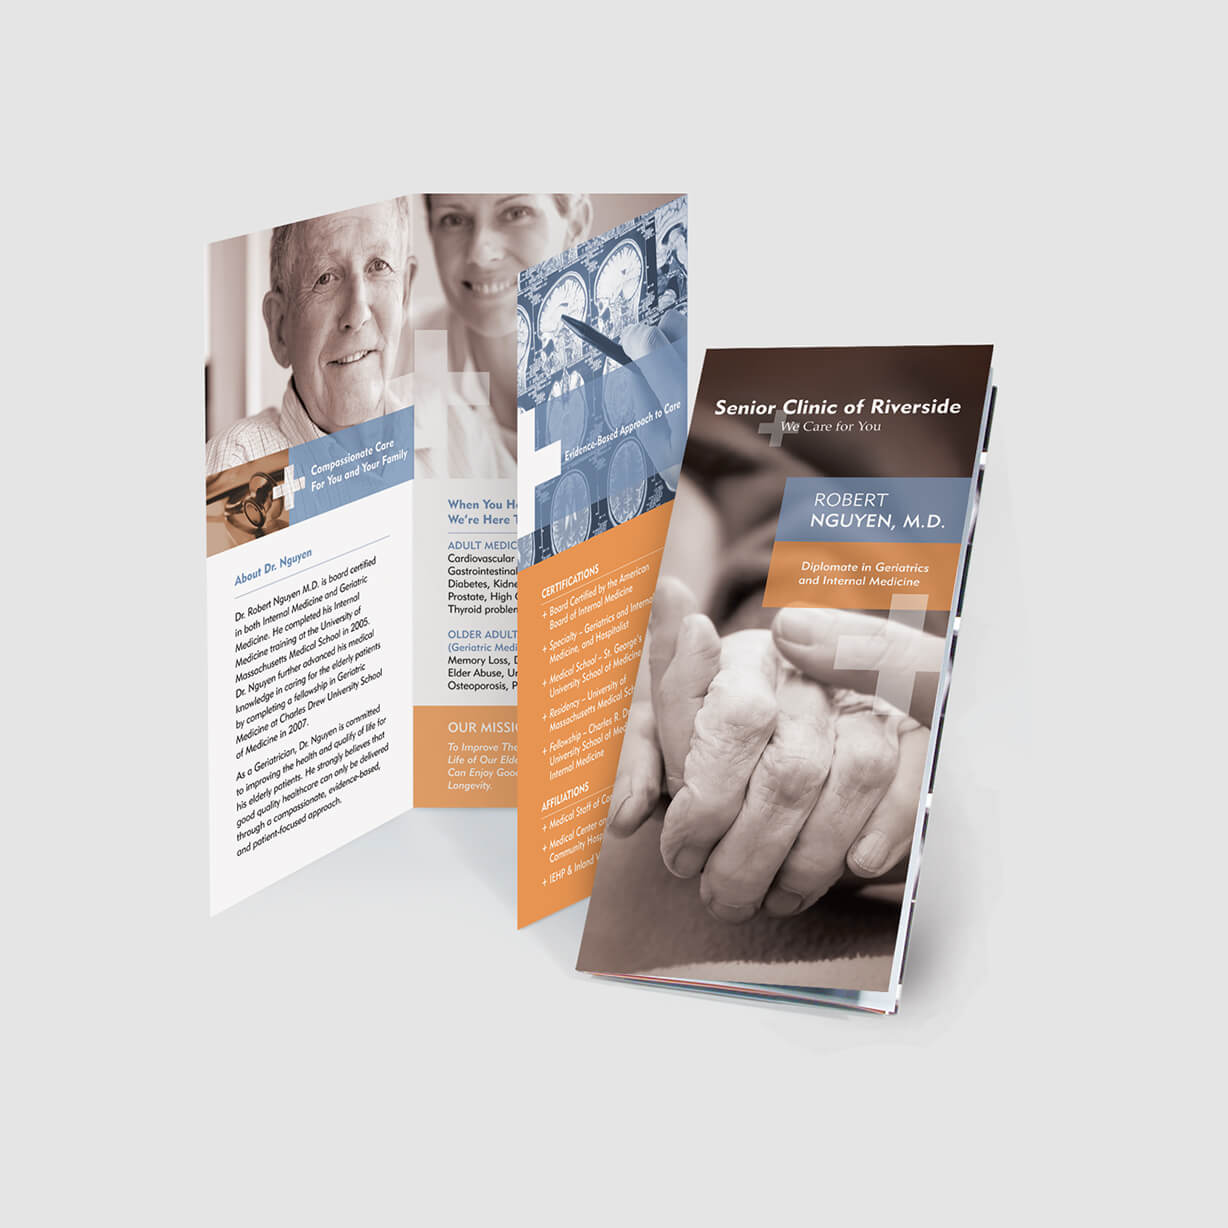 Medical Health Care Brochure Design Samples